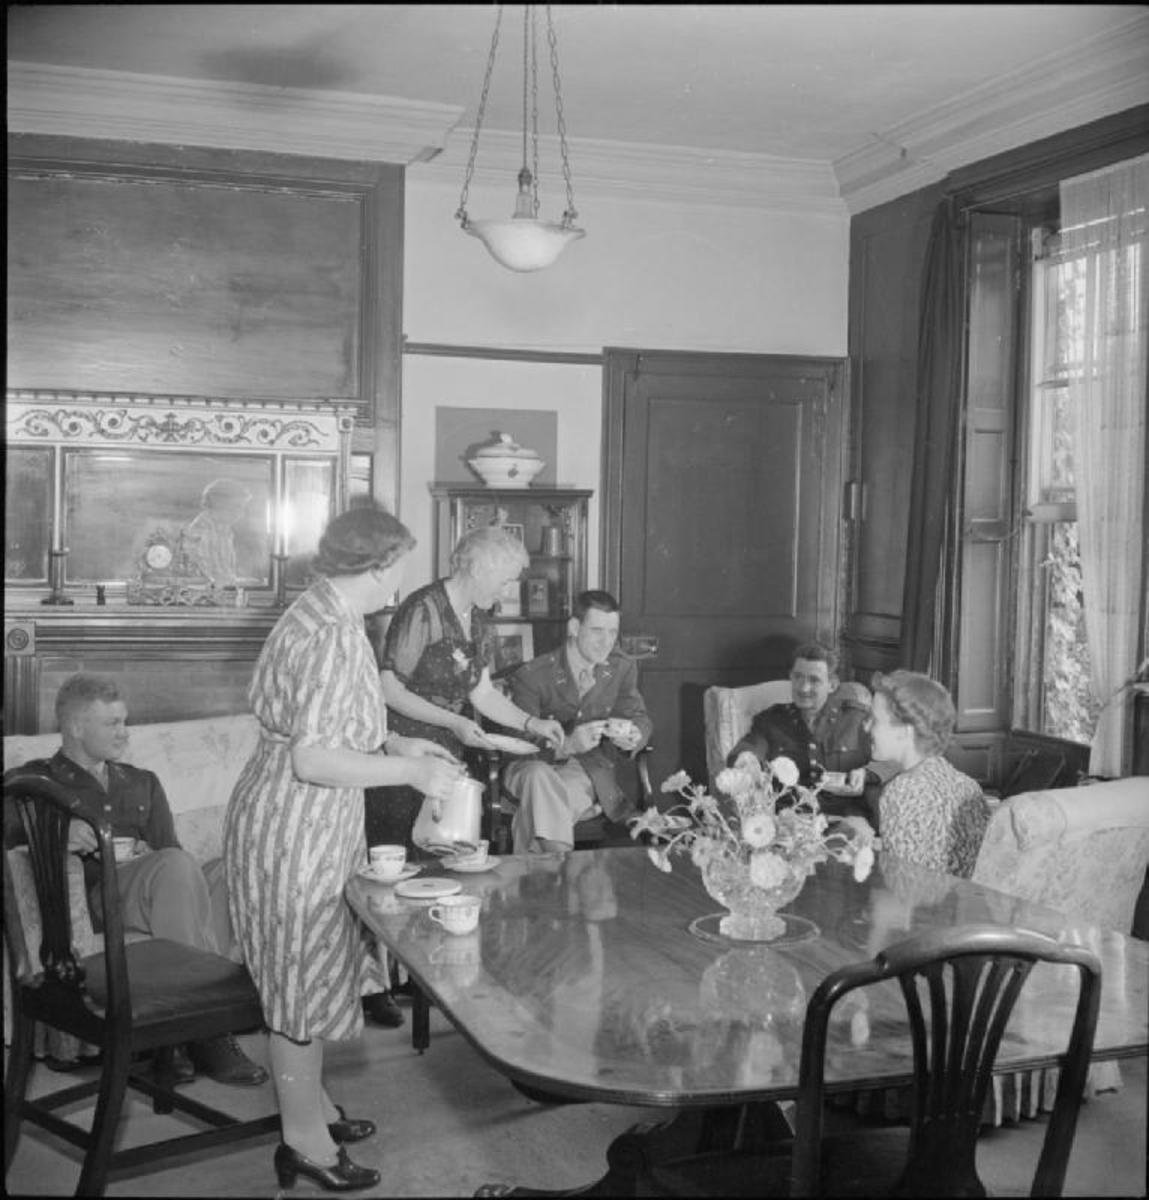 Photograph of American soldiers having afternoon tea in Winchester, England. (ca. 1944). Photographer unknown, of the Ministry of Information Photo Division. Work is in the public domain.